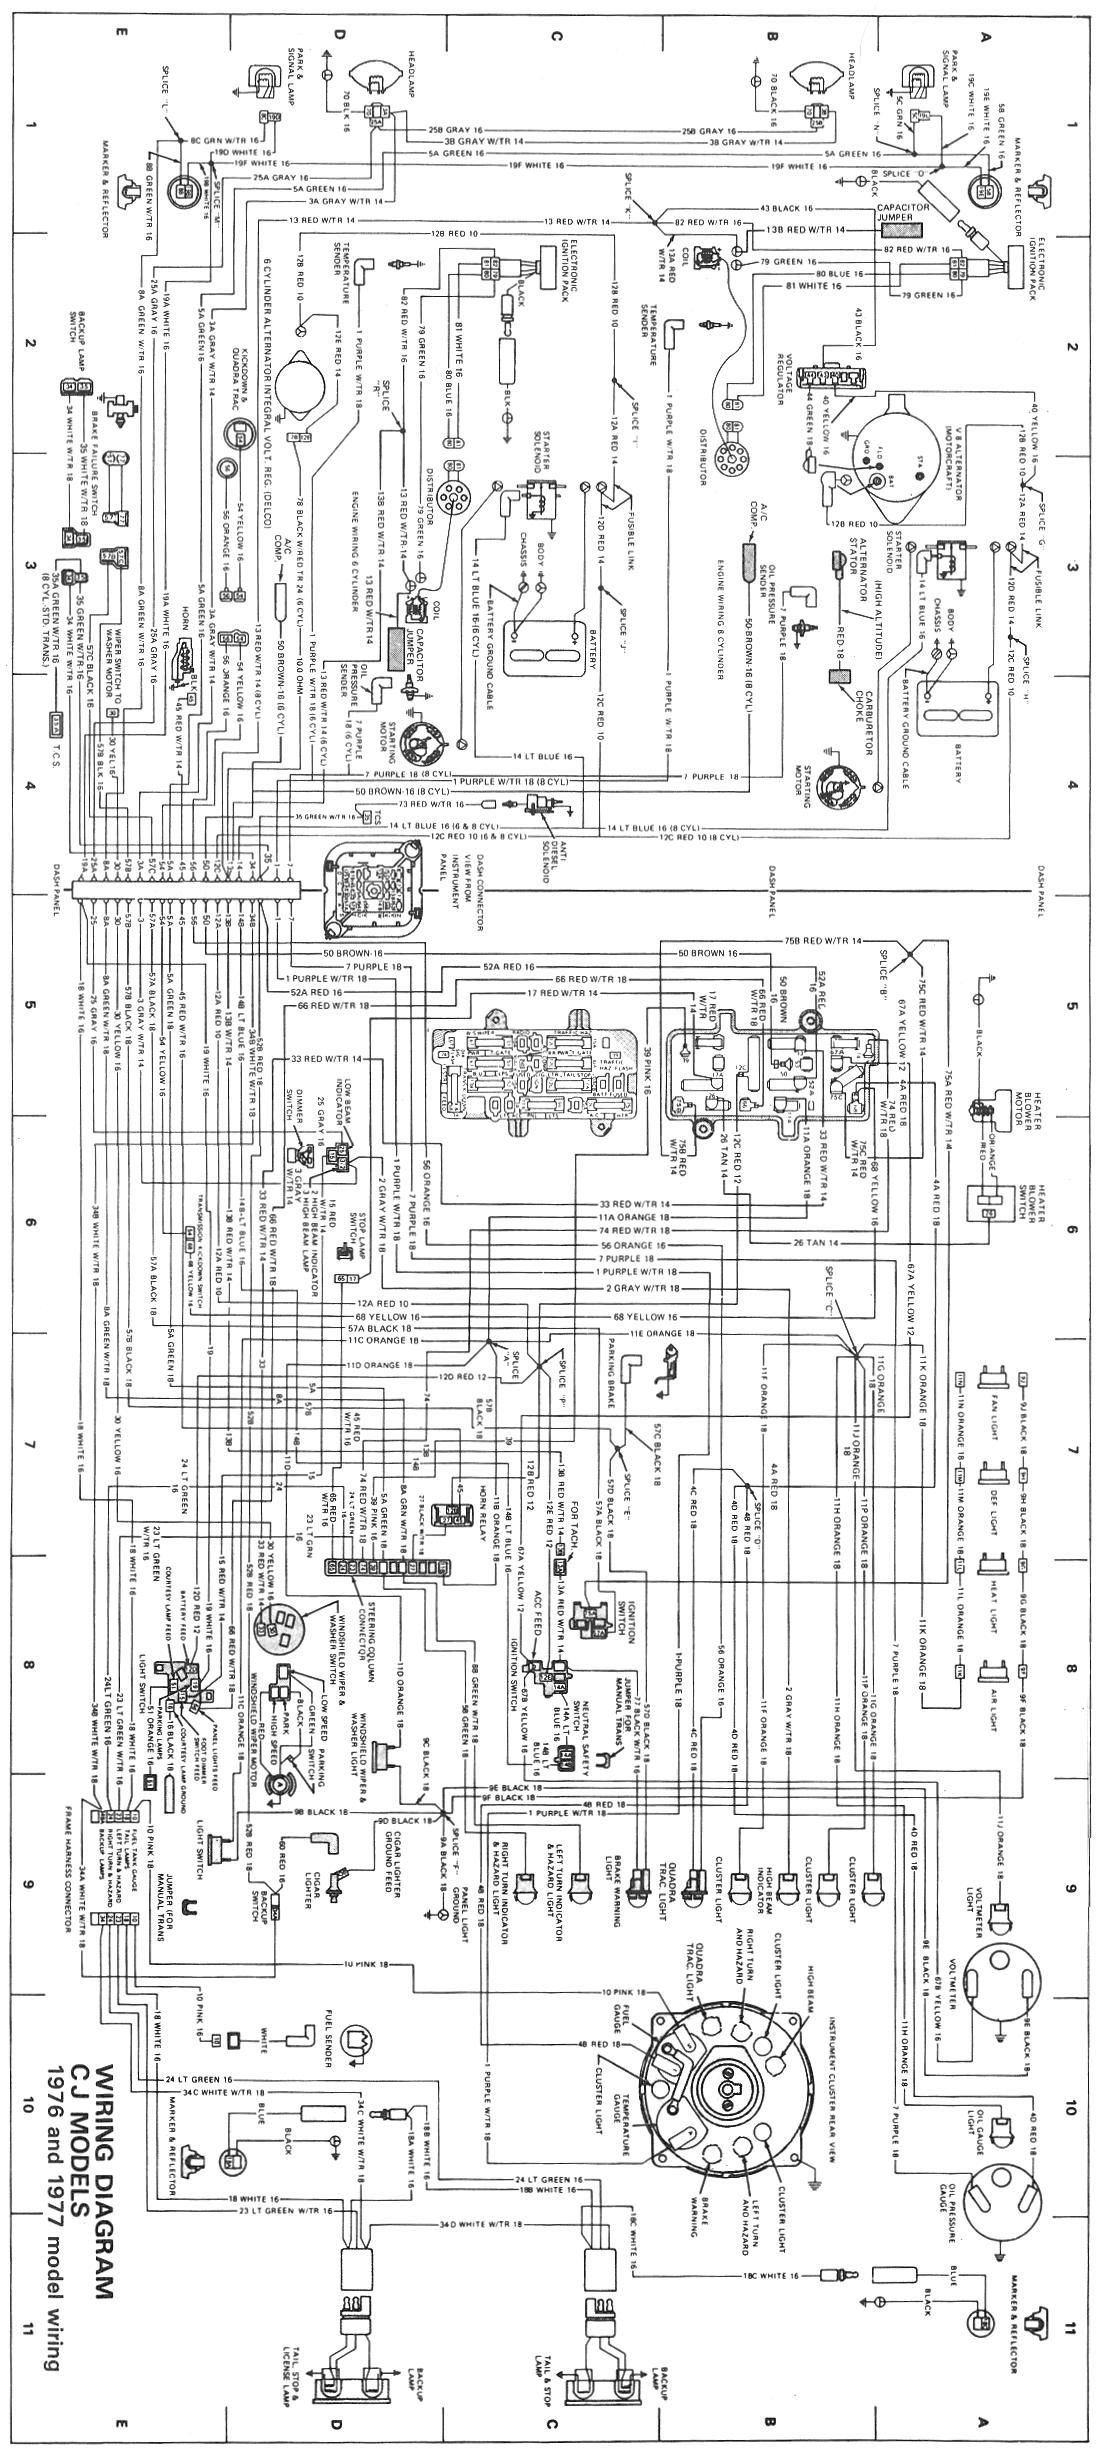 8d25ded6e3673519e155875e09844e5e cj wiring diagram 1976 1977 jpg 1,100�2,459 pixels 1976 jeep cj5 1967 jeep cj5 wiring harness at mifinder.co